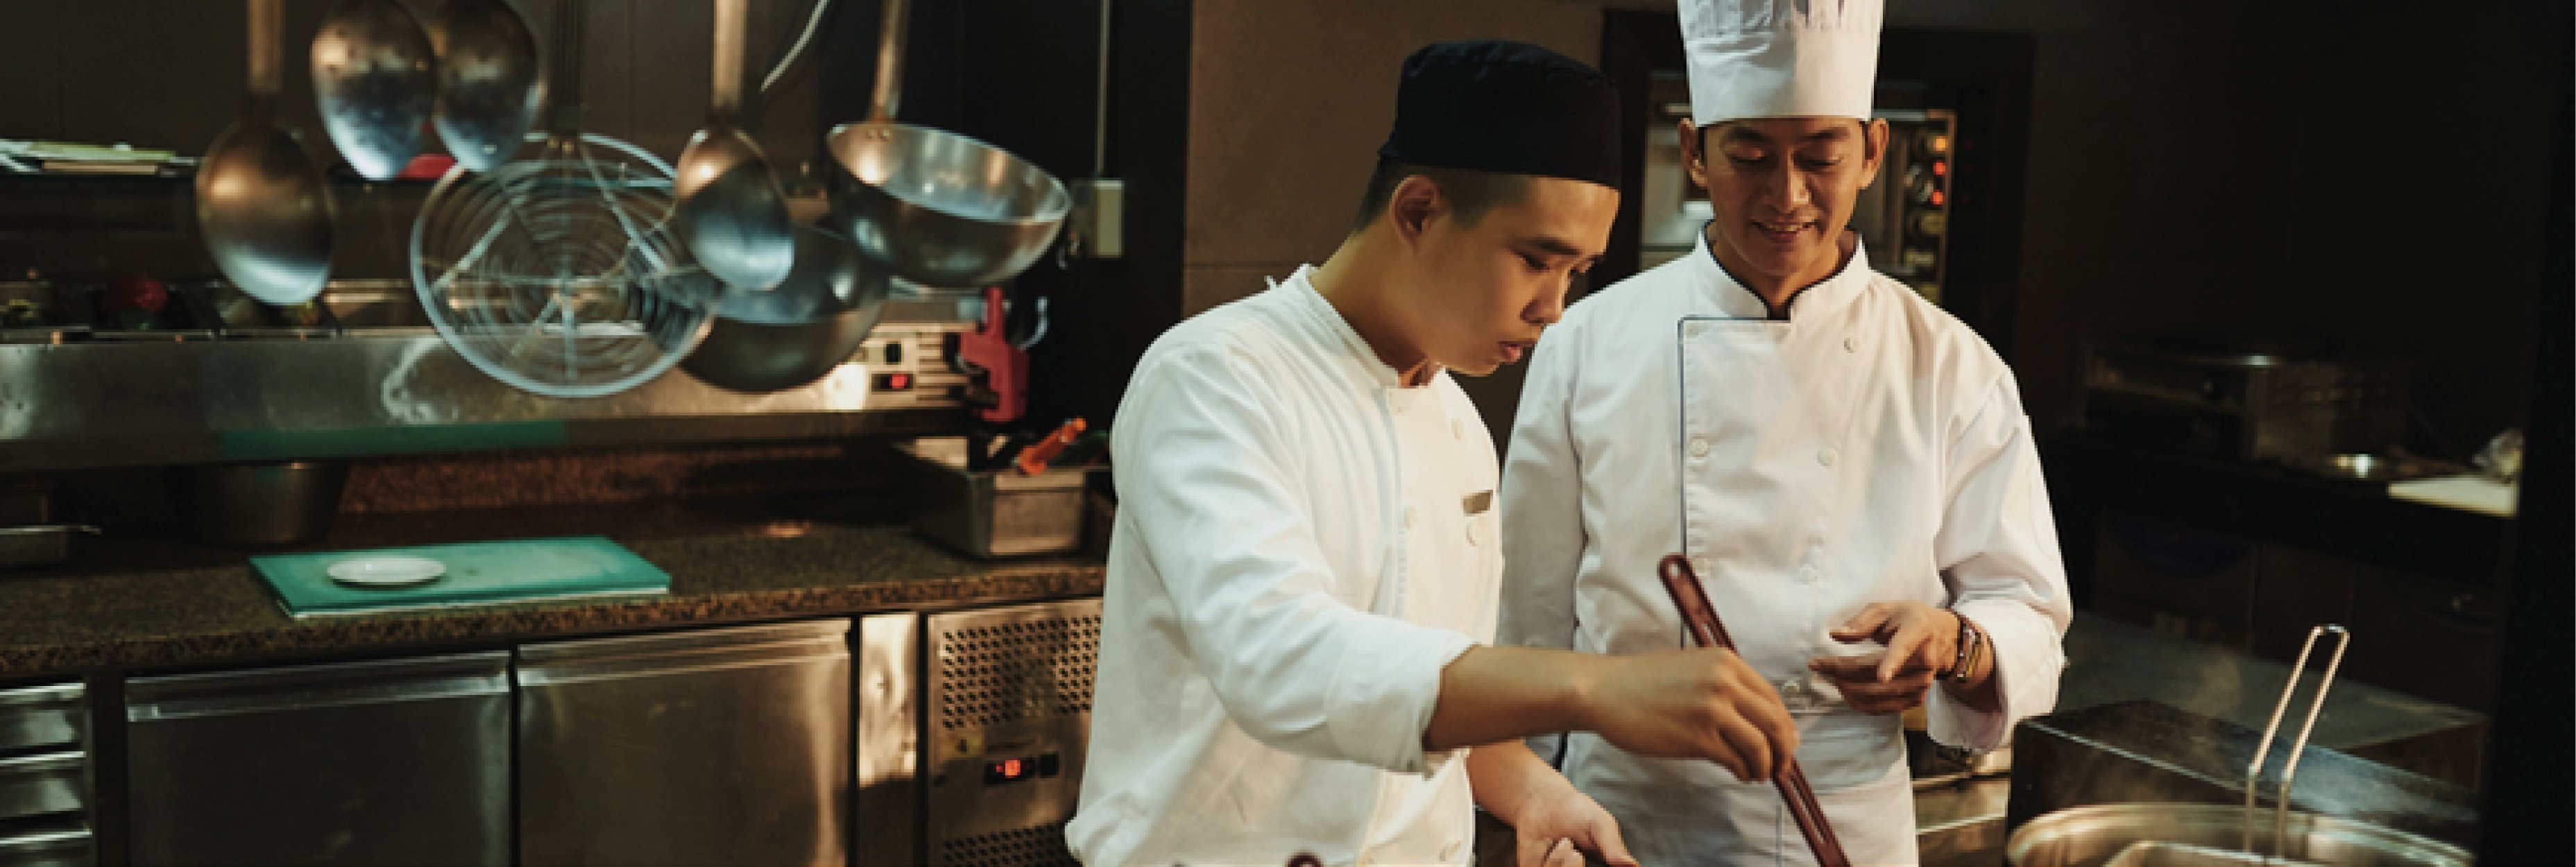 How big is the food waste opportunity? 3 hotels in Asia reveal their progress